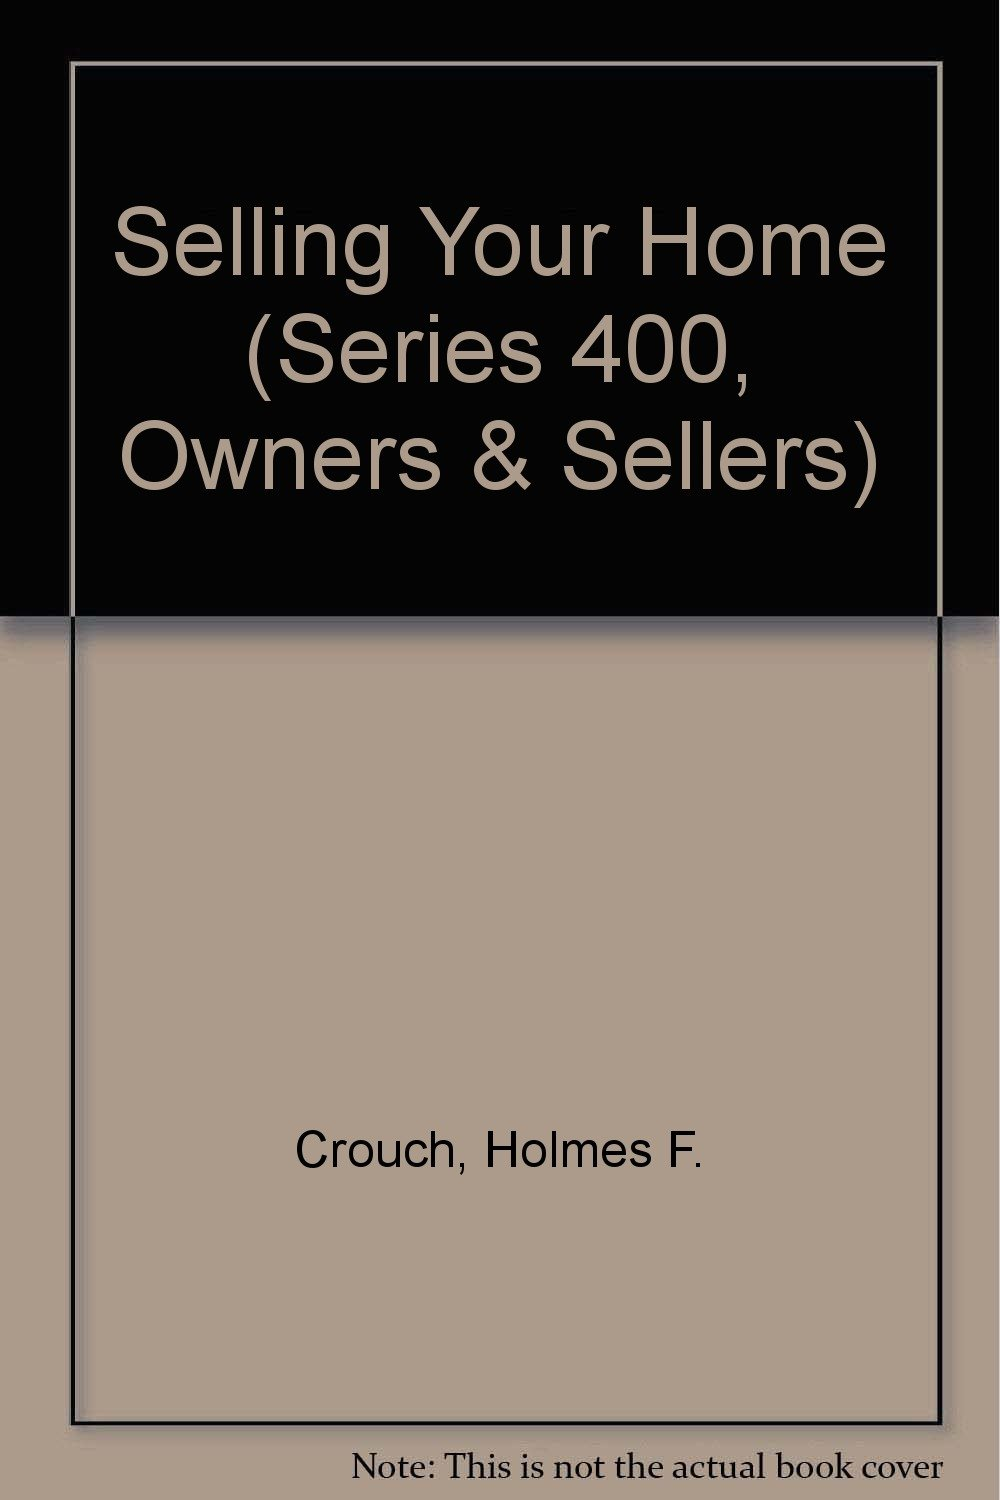 Selling Your Home (Series 400, Owners & Sellers)